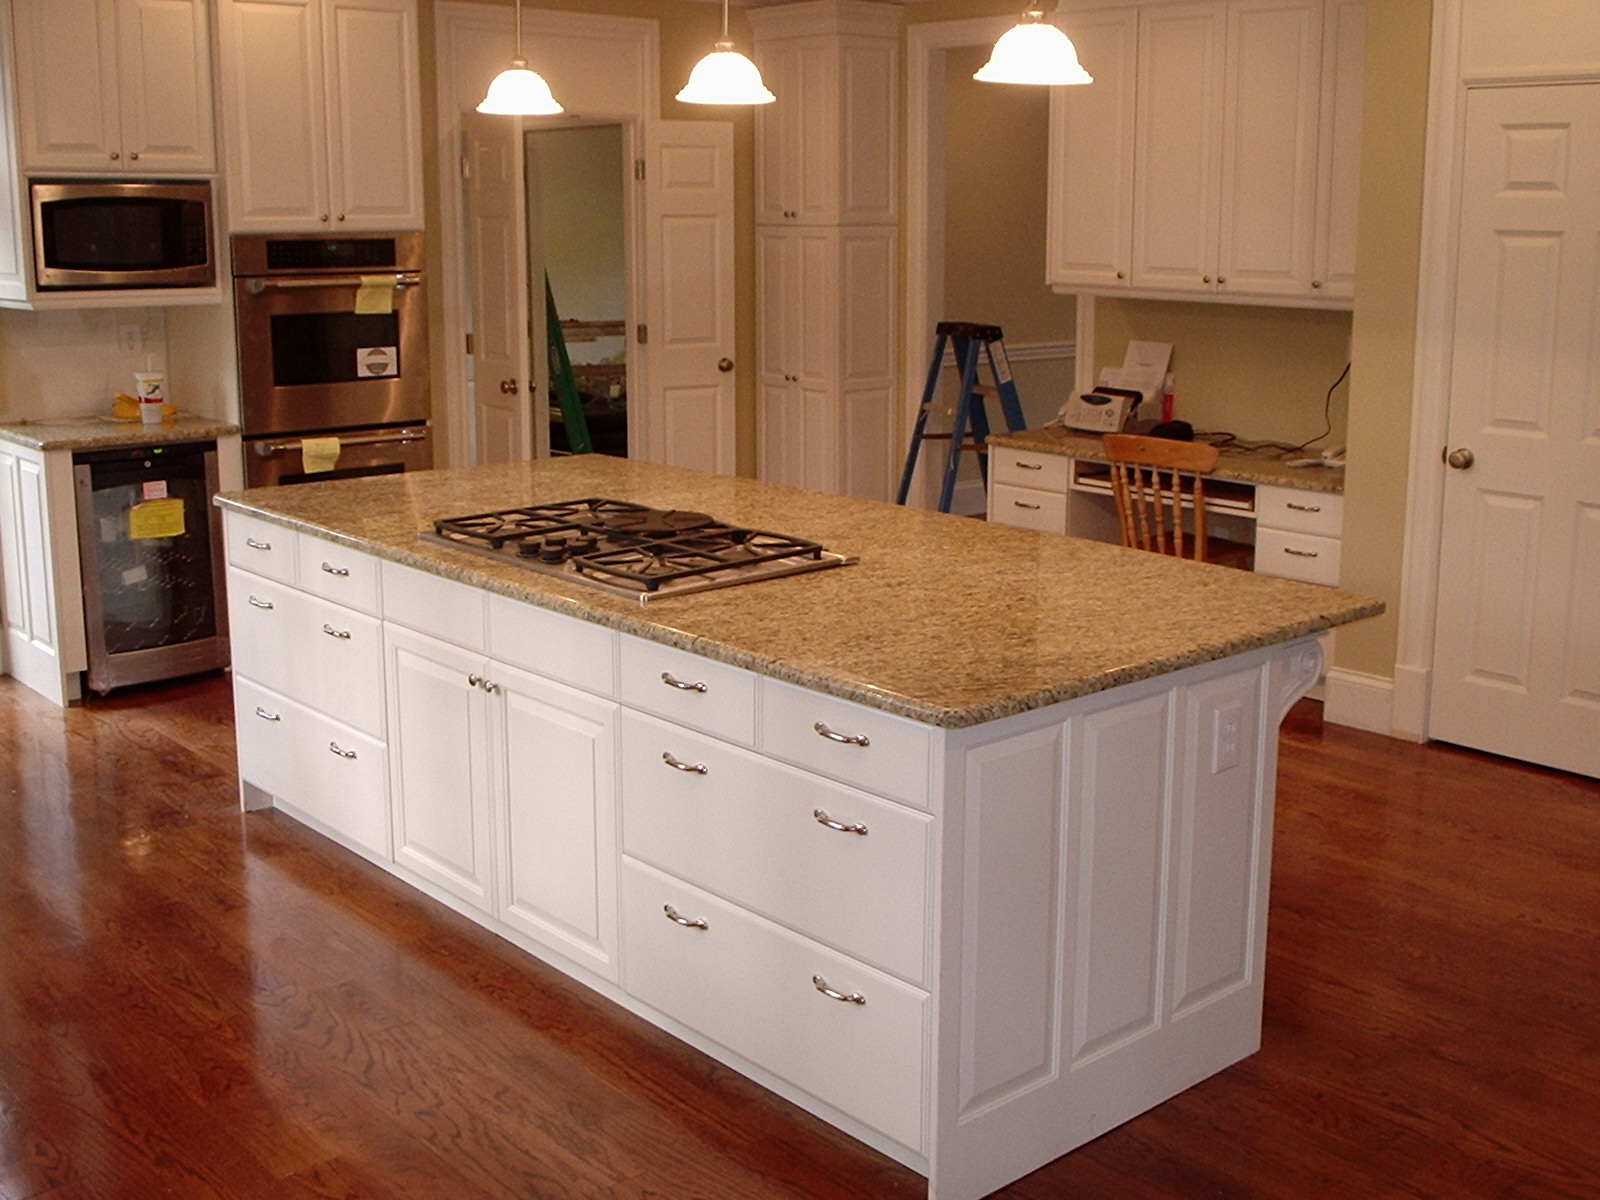 Kitchen cabinet plans dream house experience - Counter island designs ...